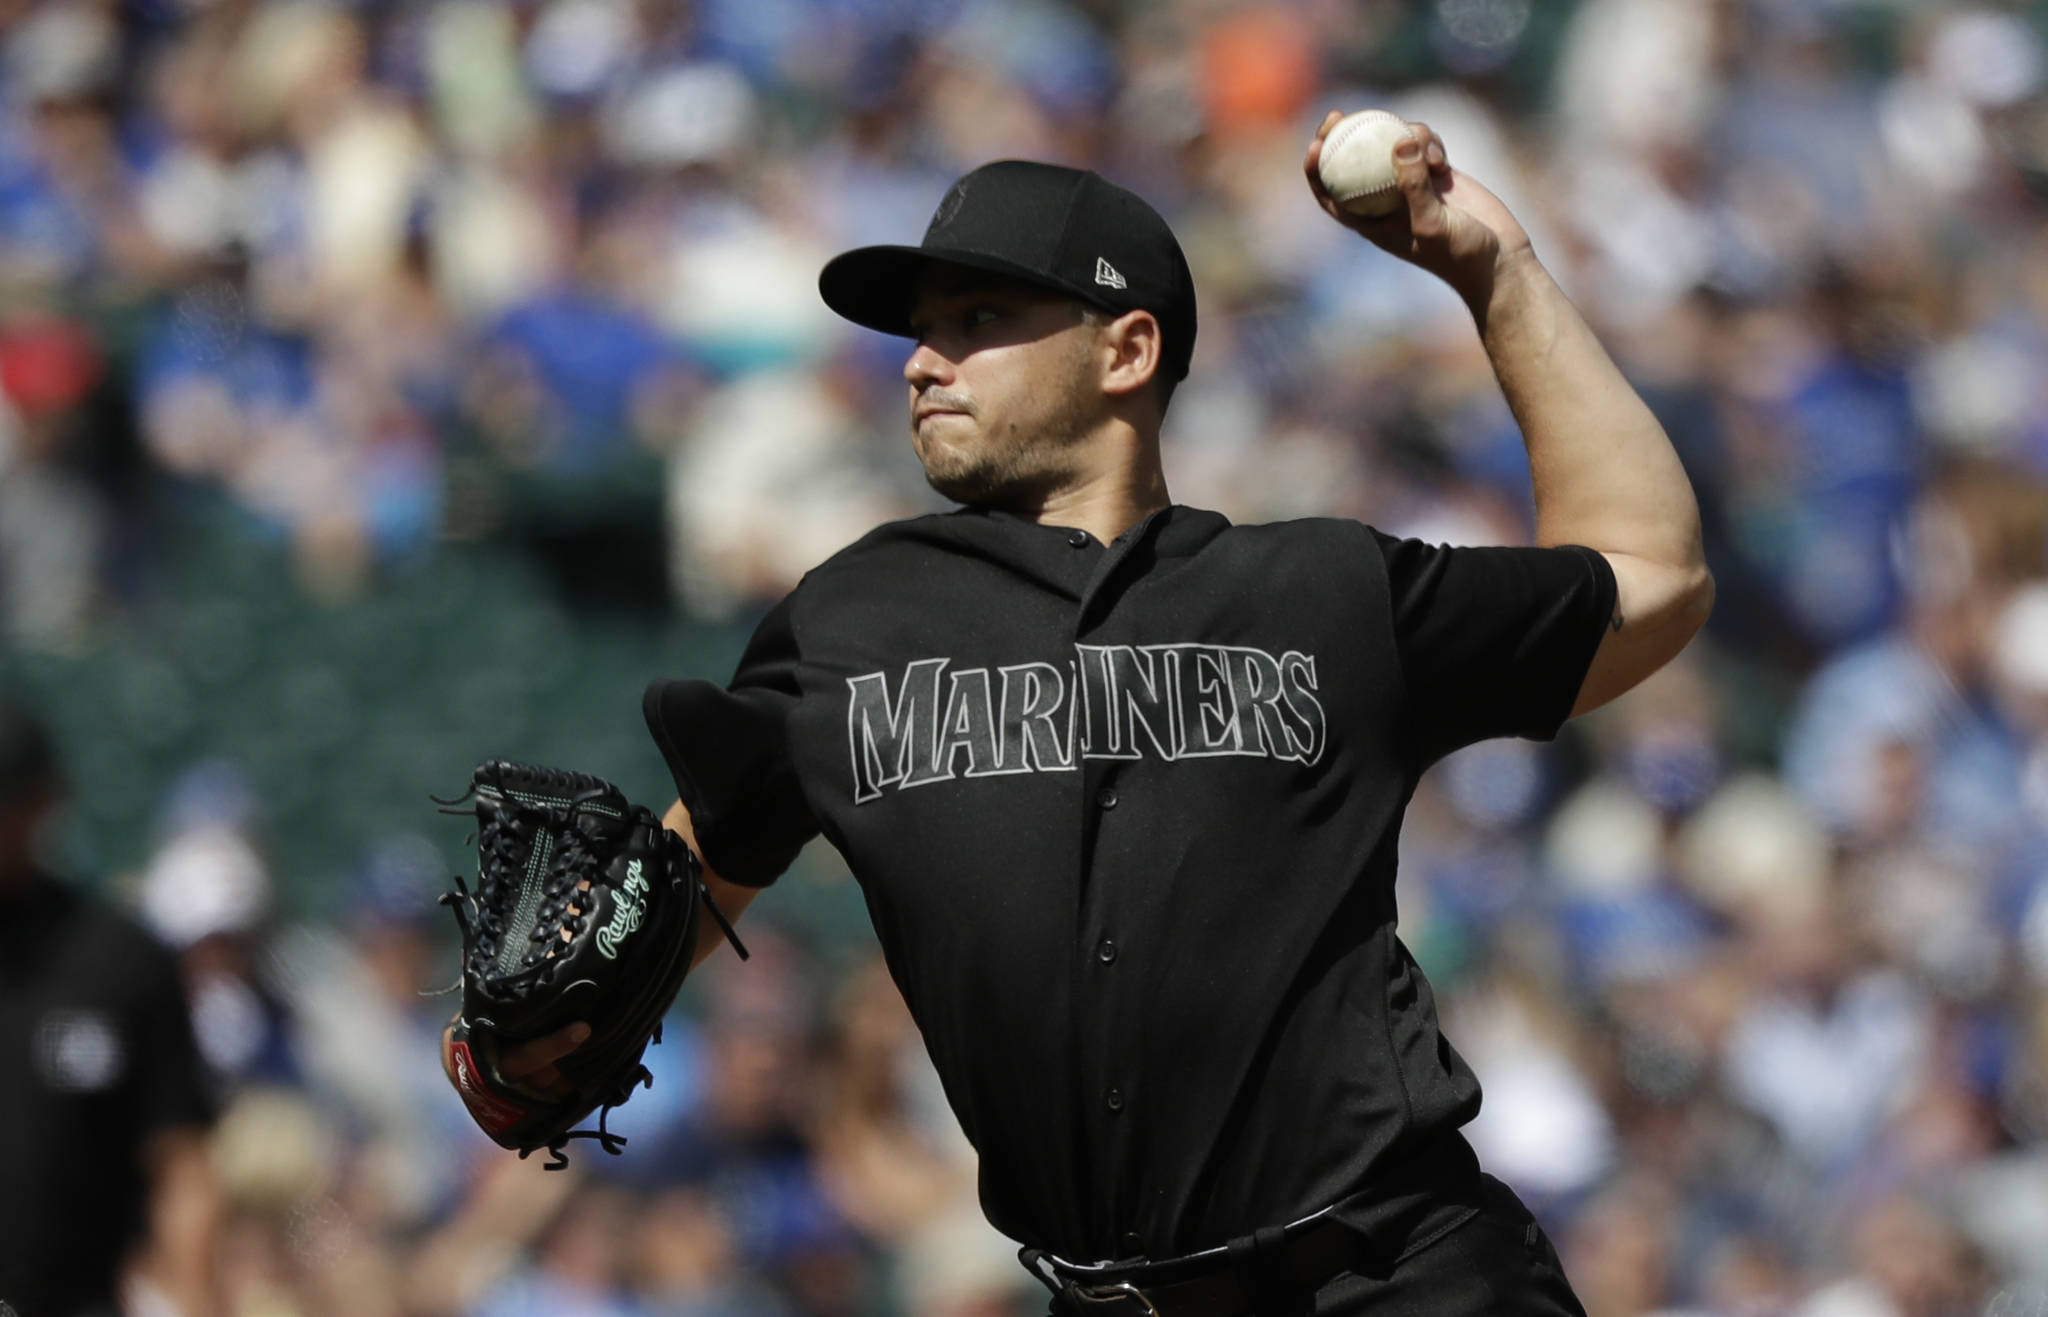 Seattle Mariners starting pitcher Marco Gonzales throws against the Toronto Blue Jays in the third inning of Sunday's game in Seattle. (AP Photo/Elaine Thompson)